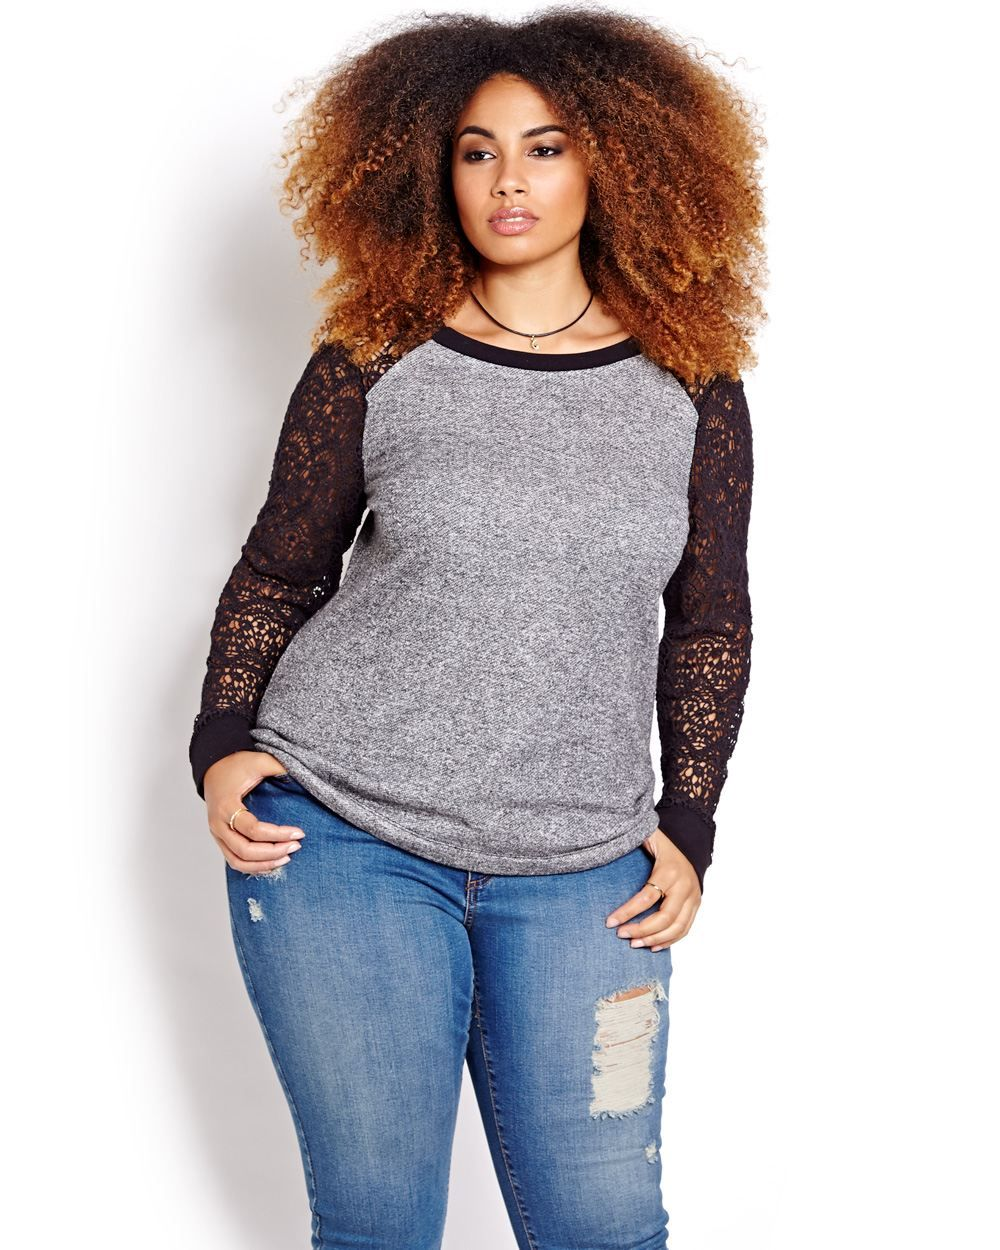 The trendy version of the sweatshirt, here's a plus size sweatshirt from Love & Legend that features a cut and sewn look with long crochet…